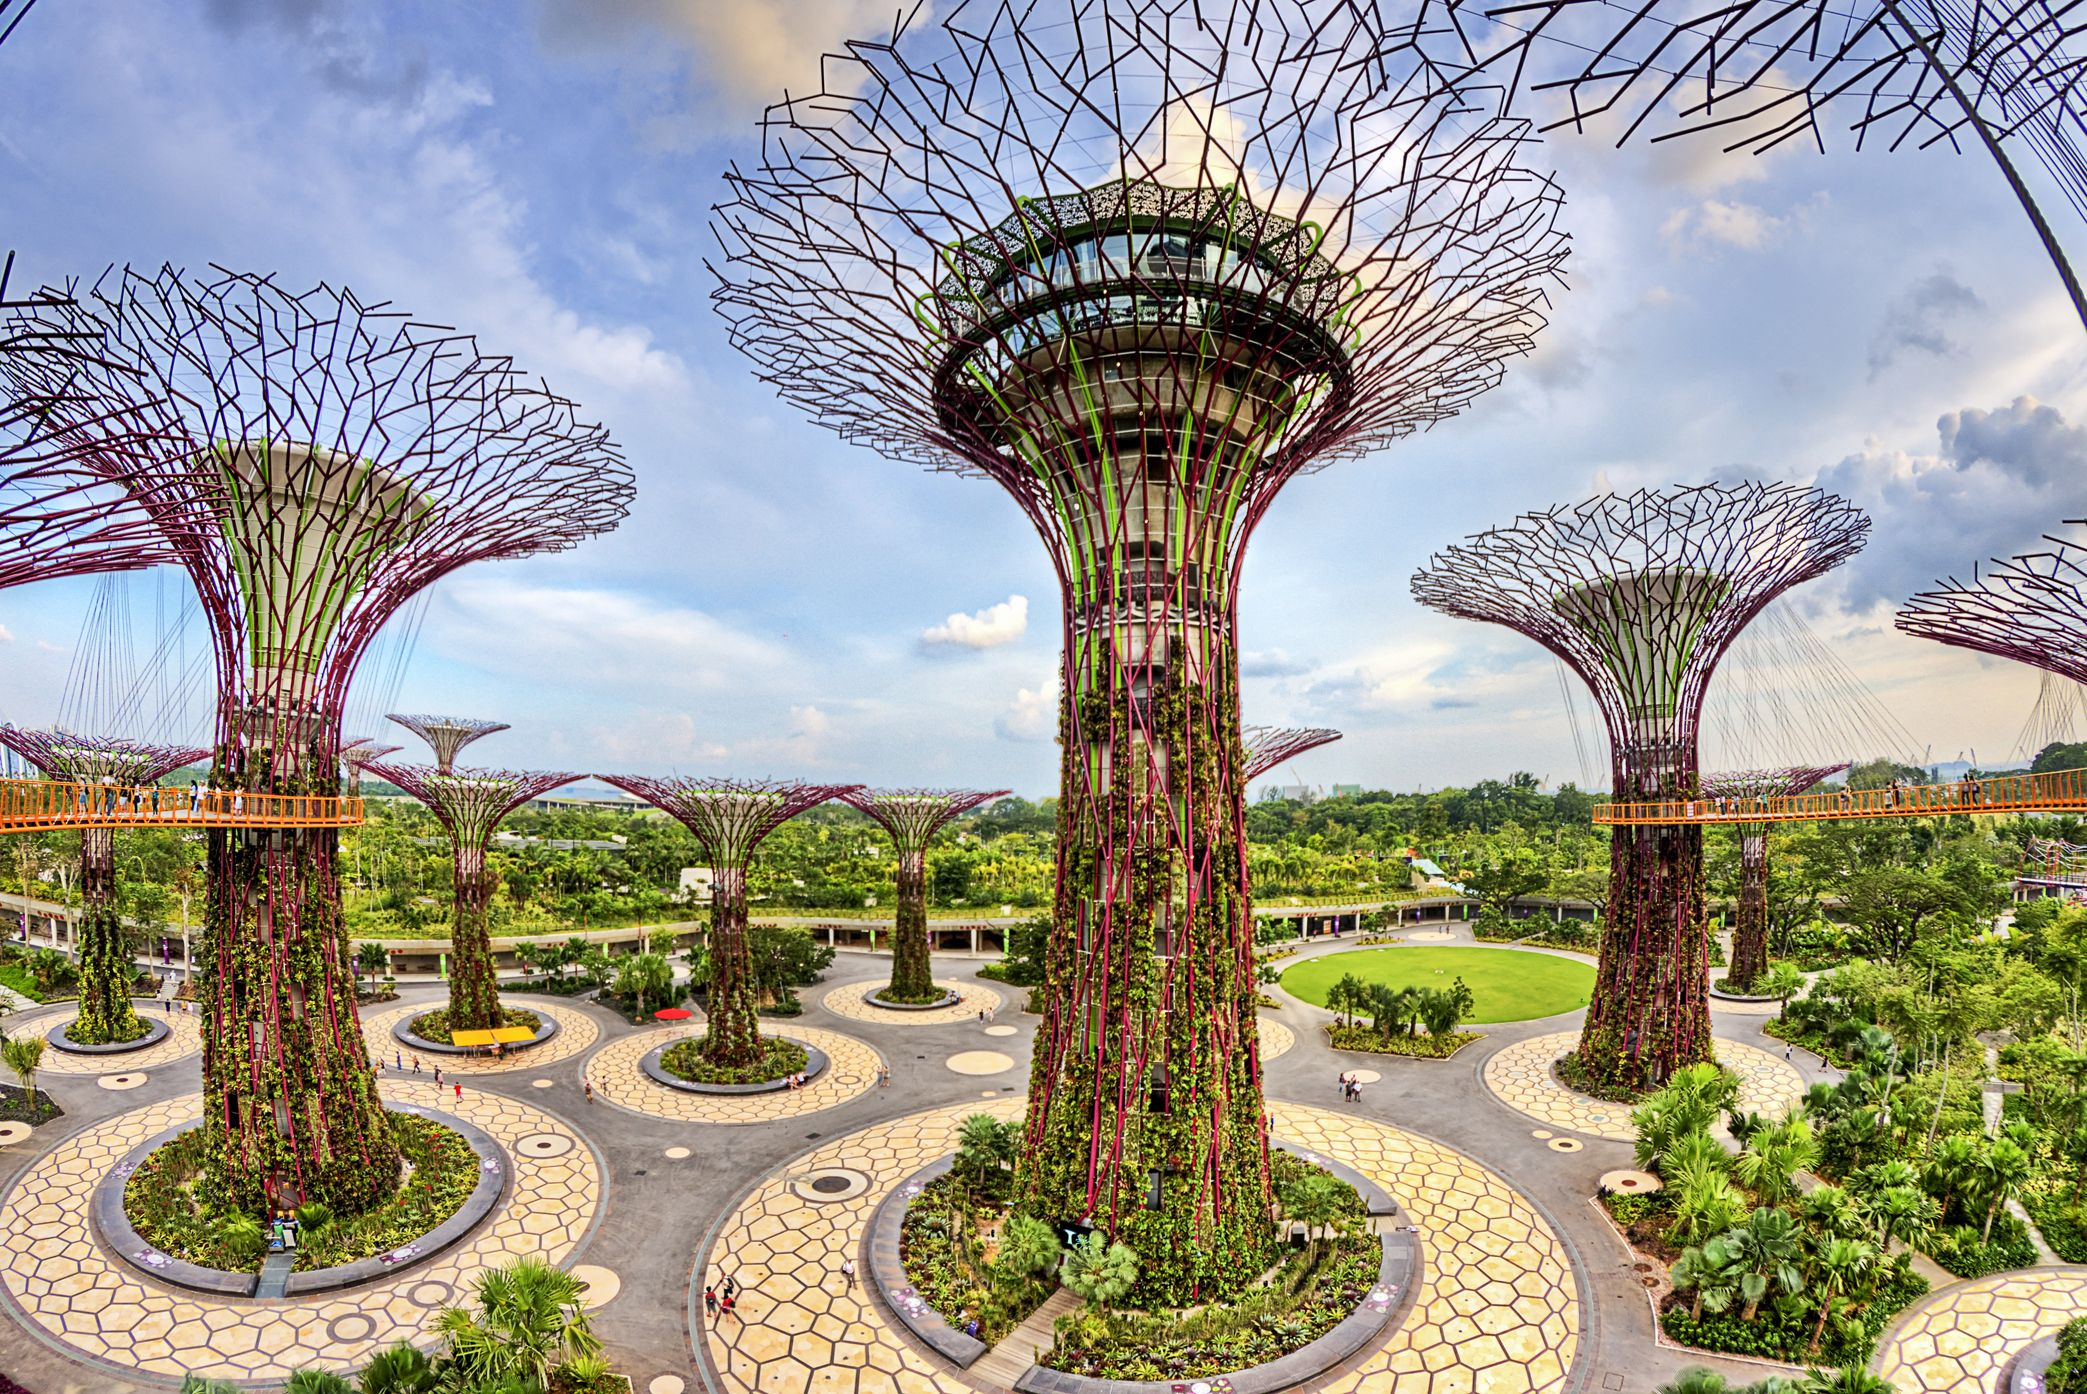 Gardens By The Bay Have A Glimpse Of This Beautifully Designed Green Space In Singapore Escape The C Honeymoon Tour Packages Honeymoon Tour Singapore Garden